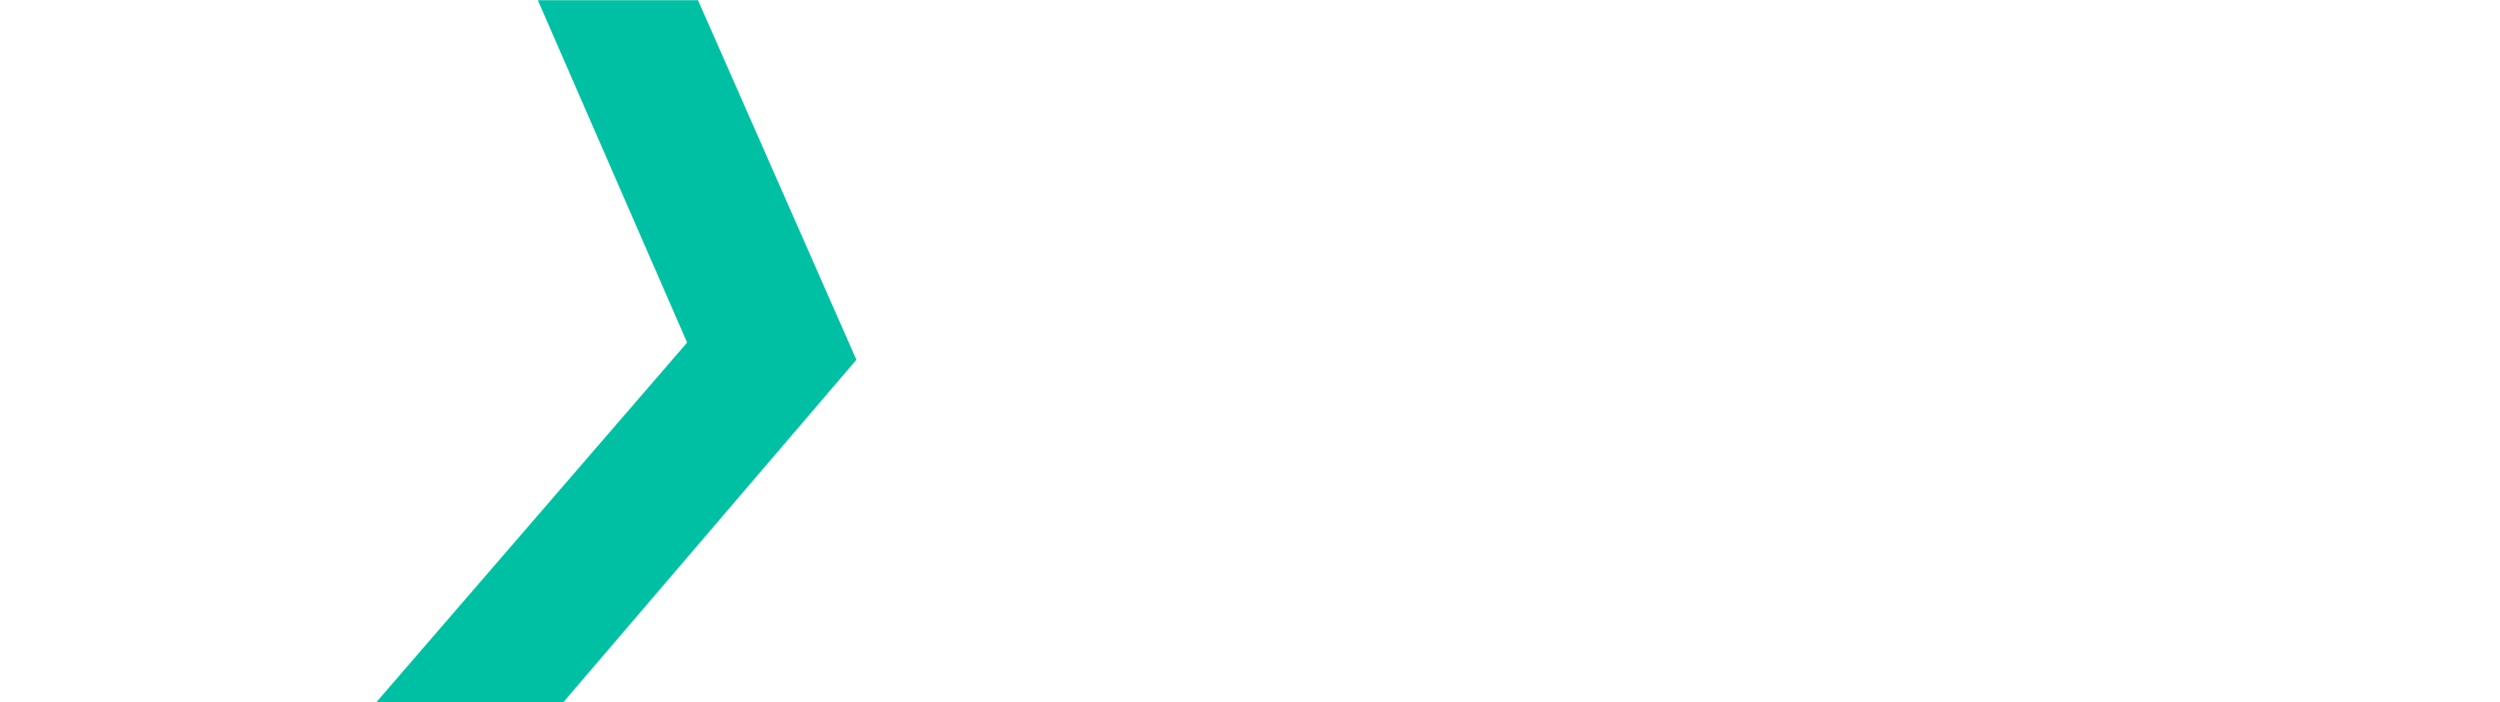 exero h kn 24.09.2018.png